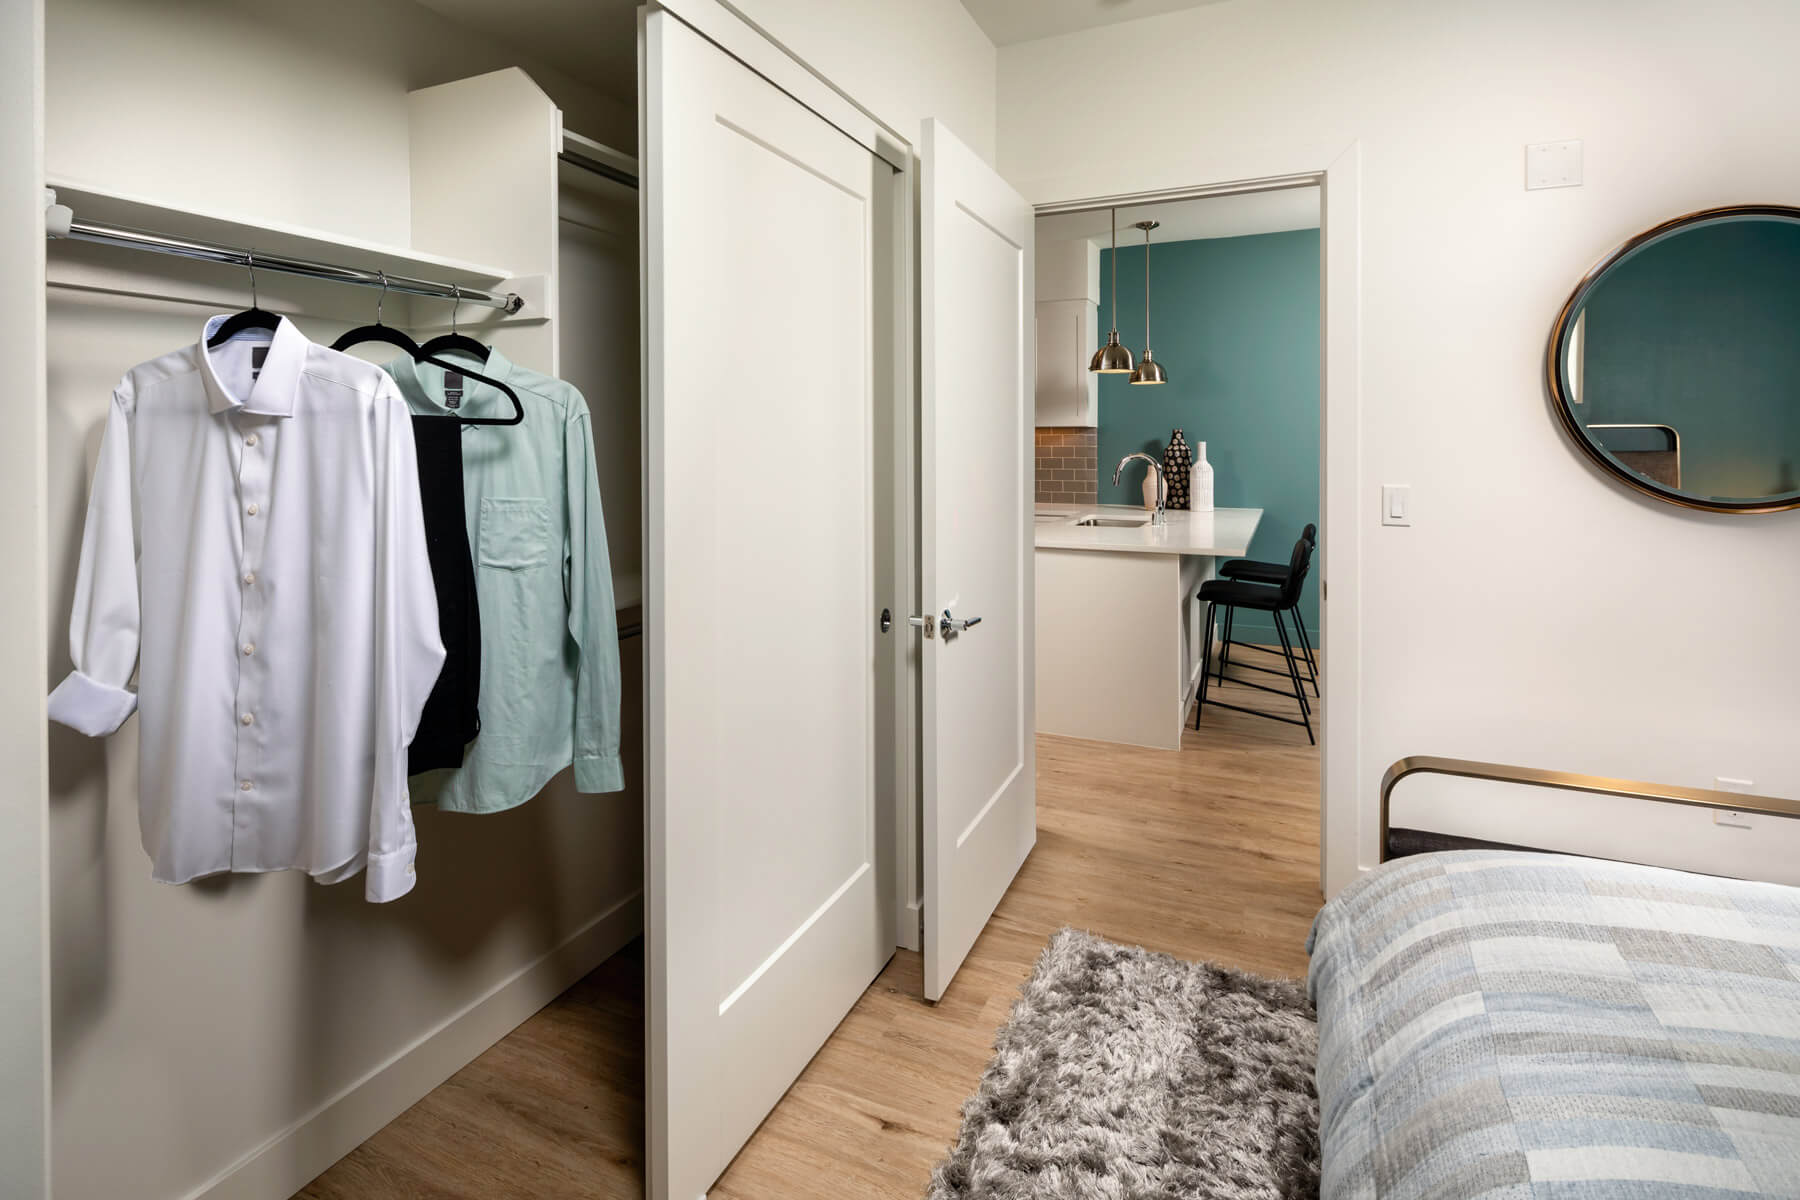 One Bedroom Residence Master Bedroom Closet